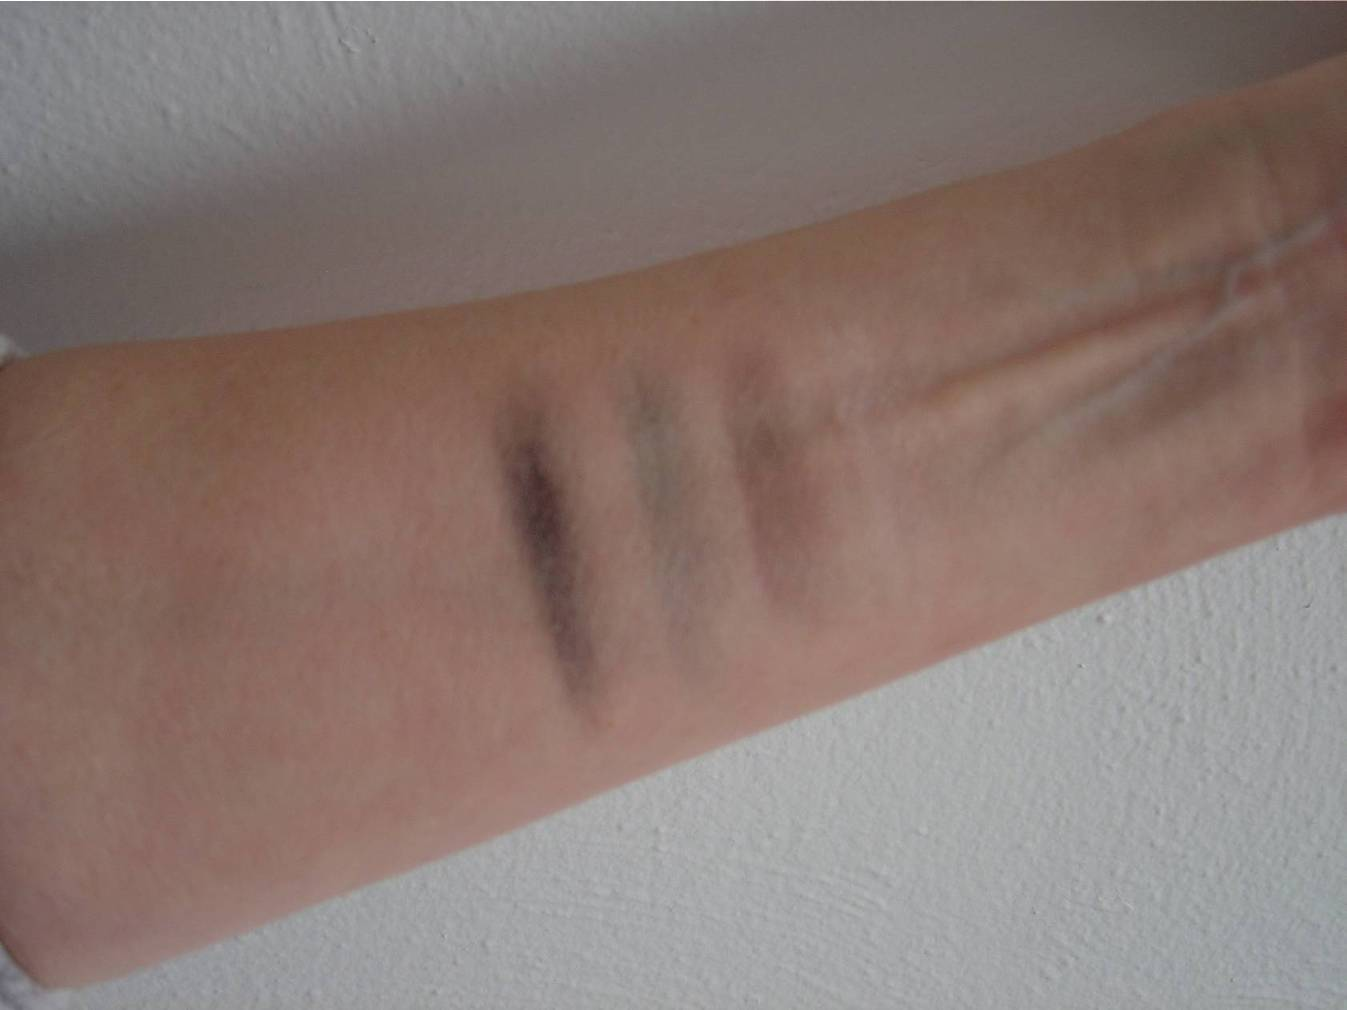 Nuance Cosmetics swatches of Smoky Eye Quad